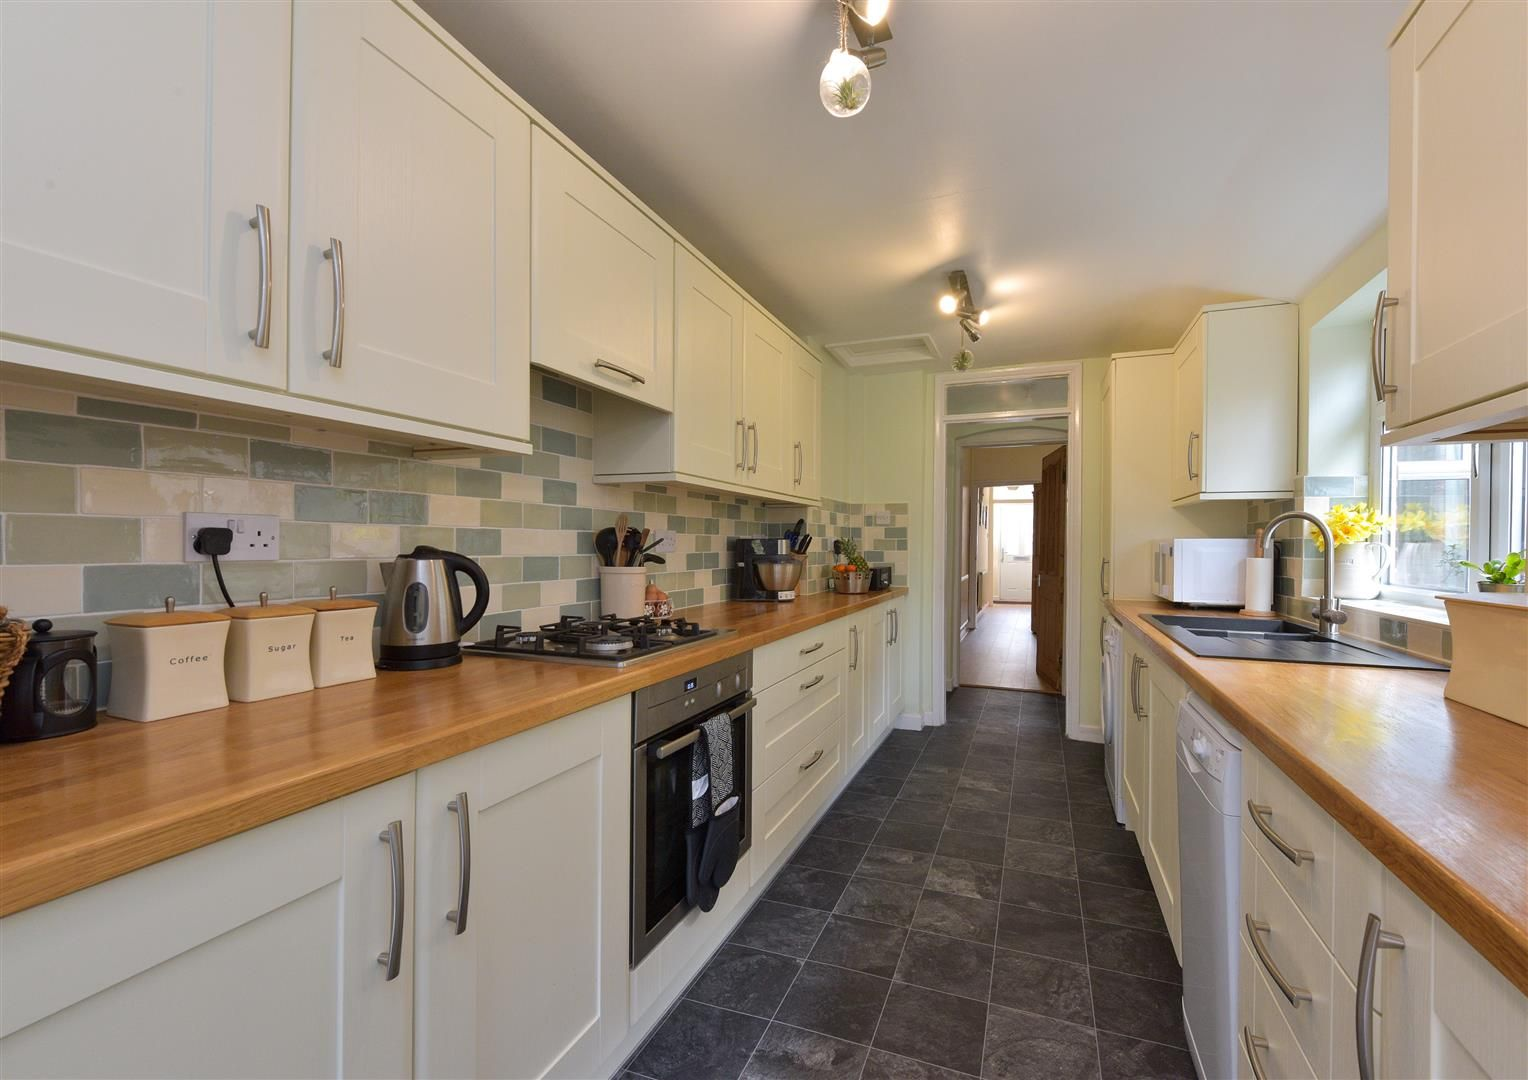 3 bed end-of-terrace for sale  - Property Image 2